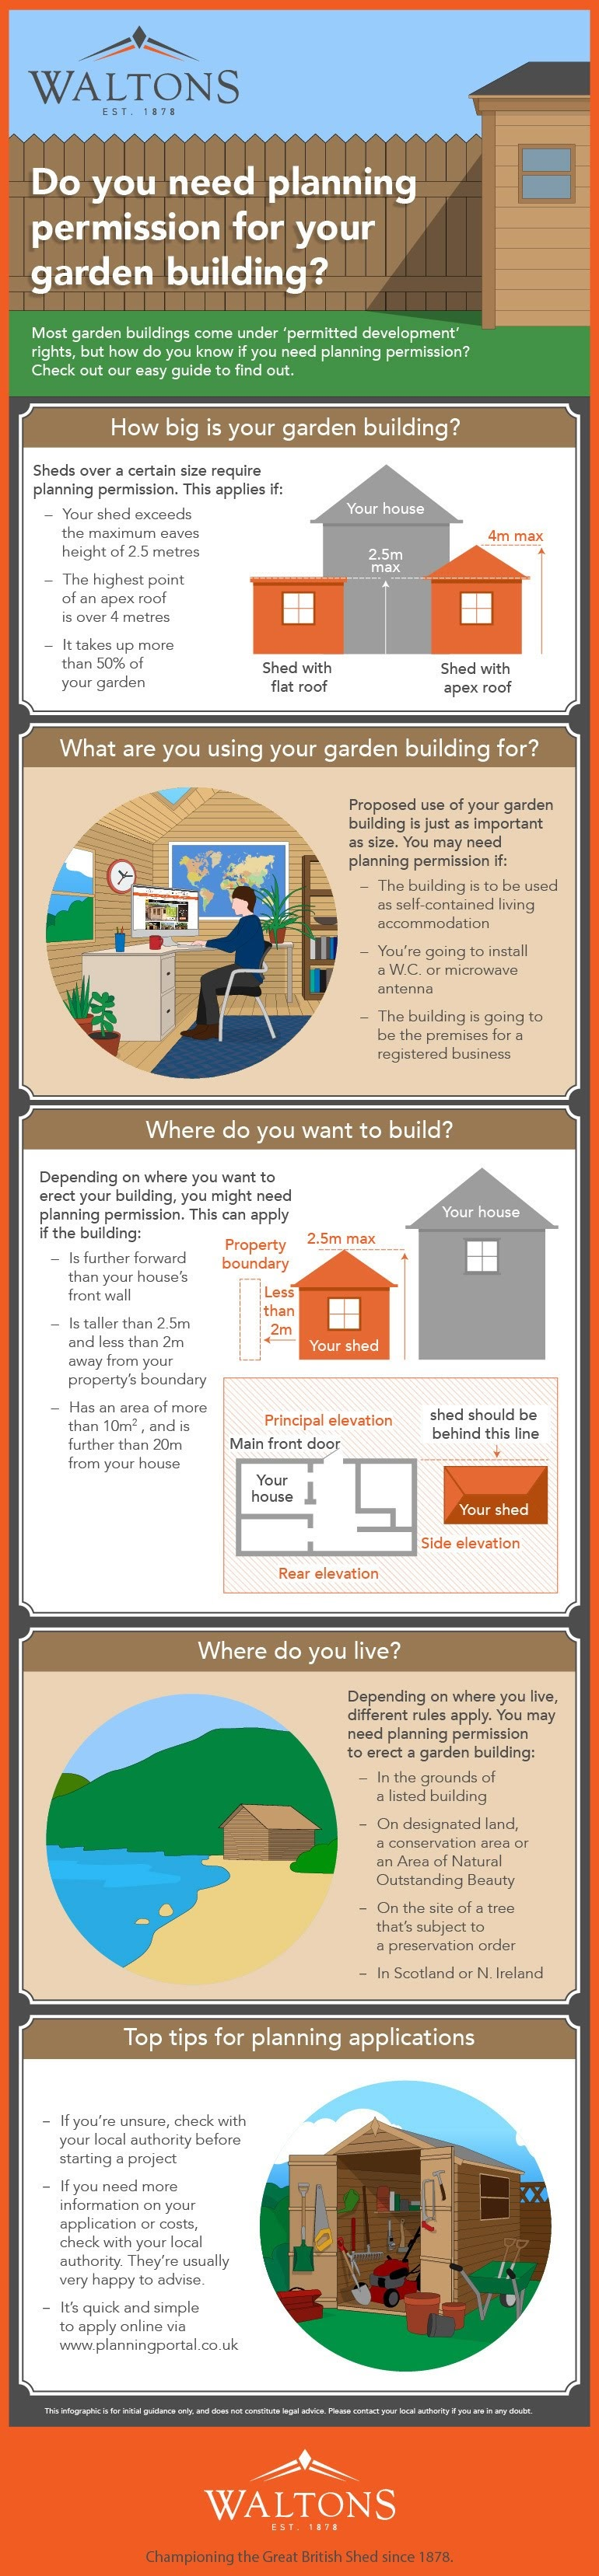 Do You Need Planning Permission For Your Garden? #infographic